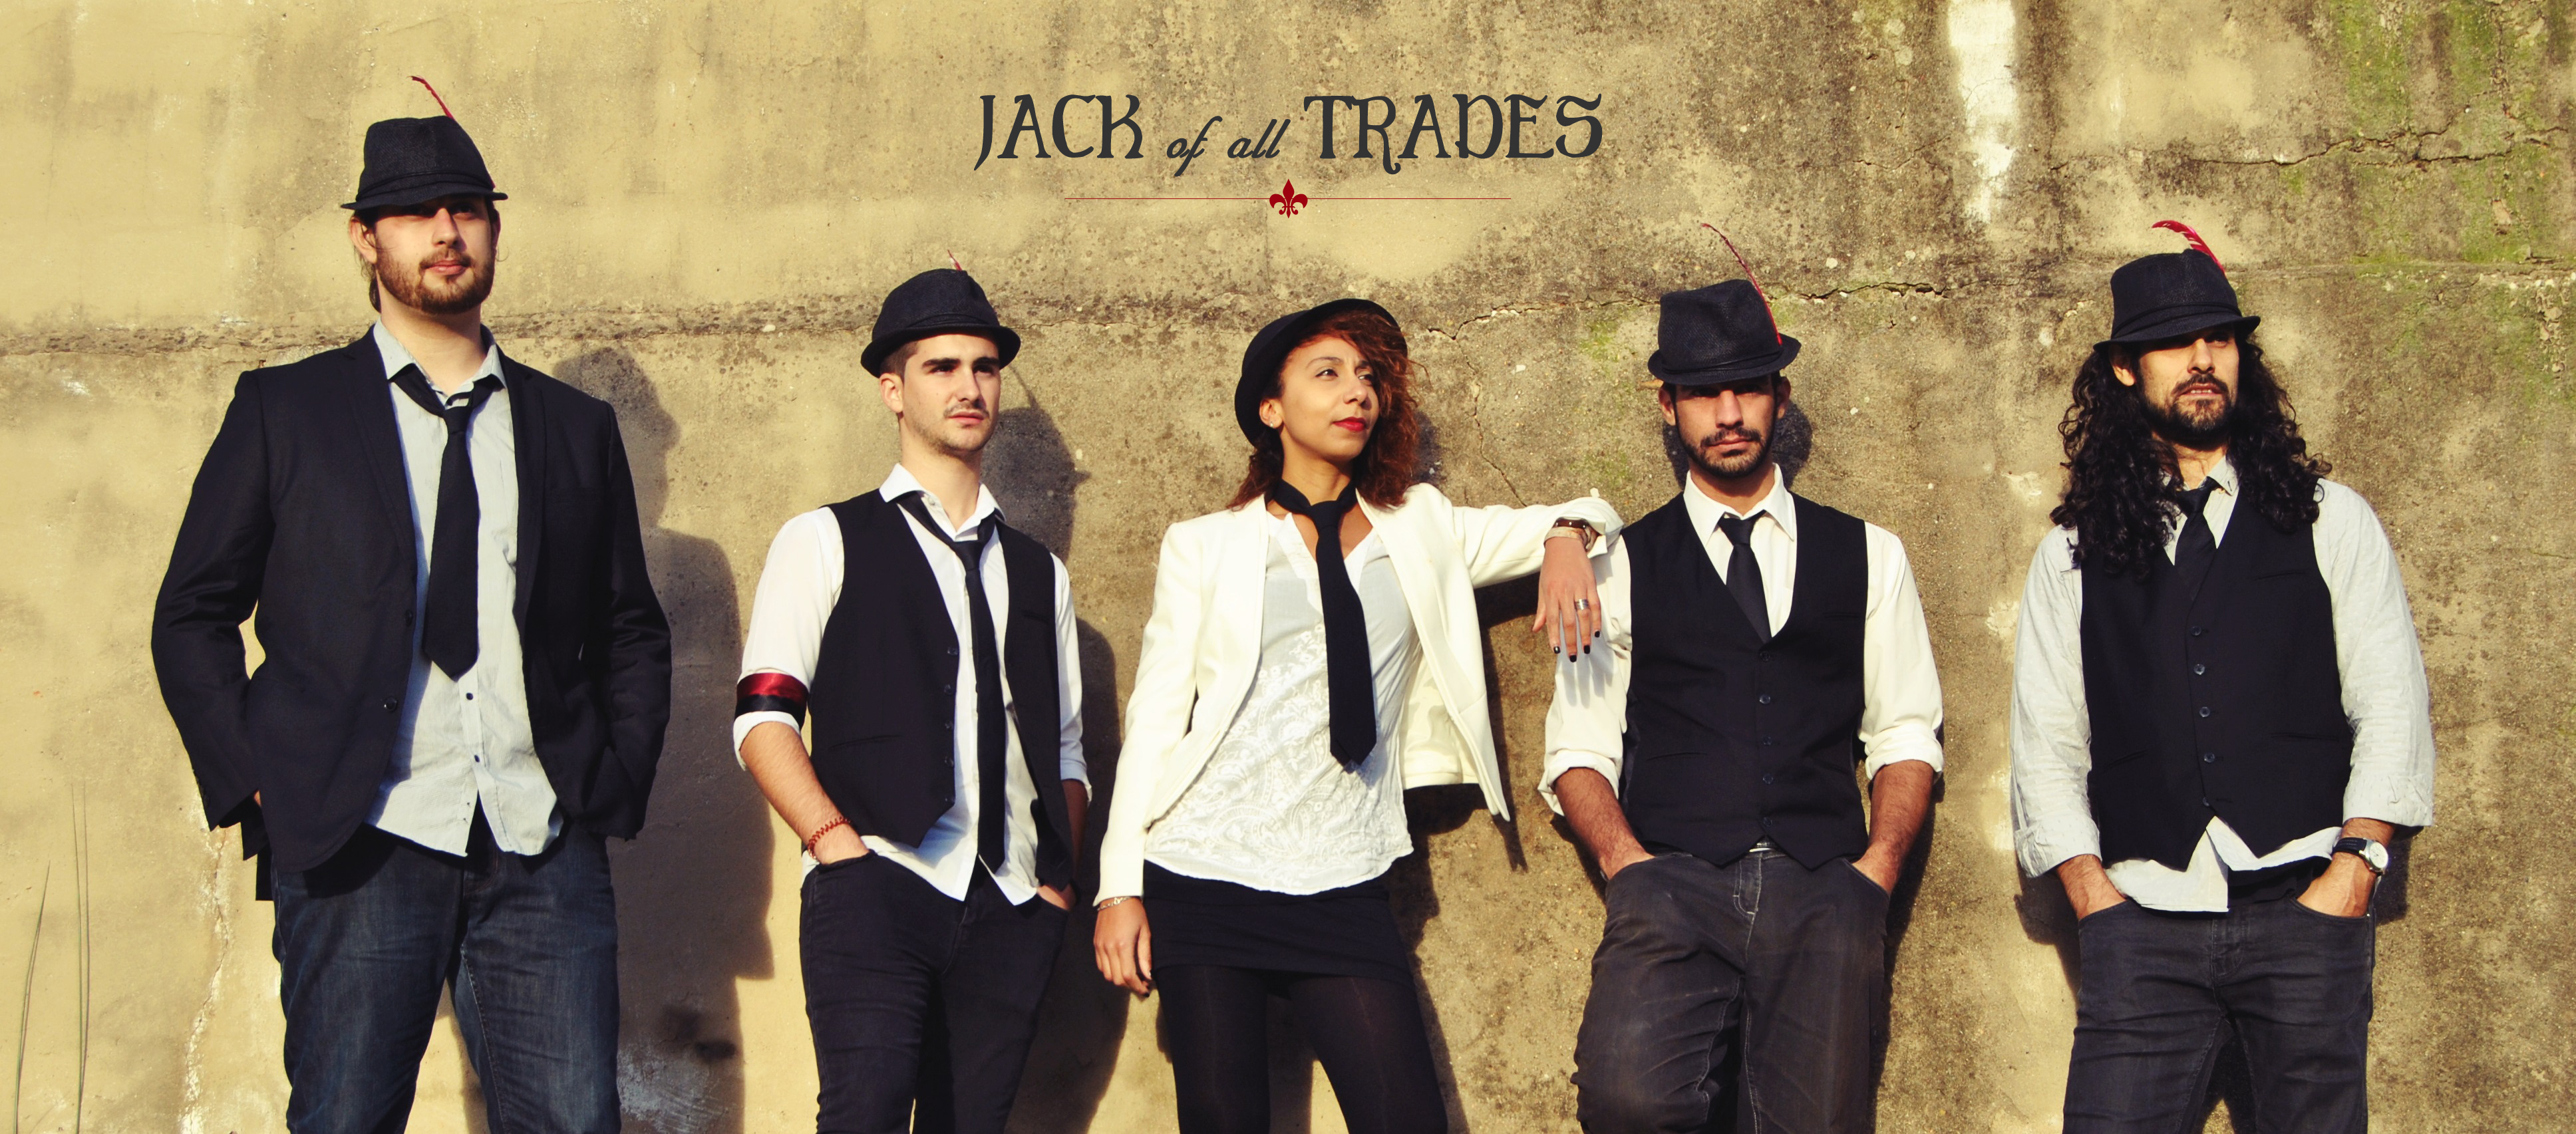 Jack of all Trades Band